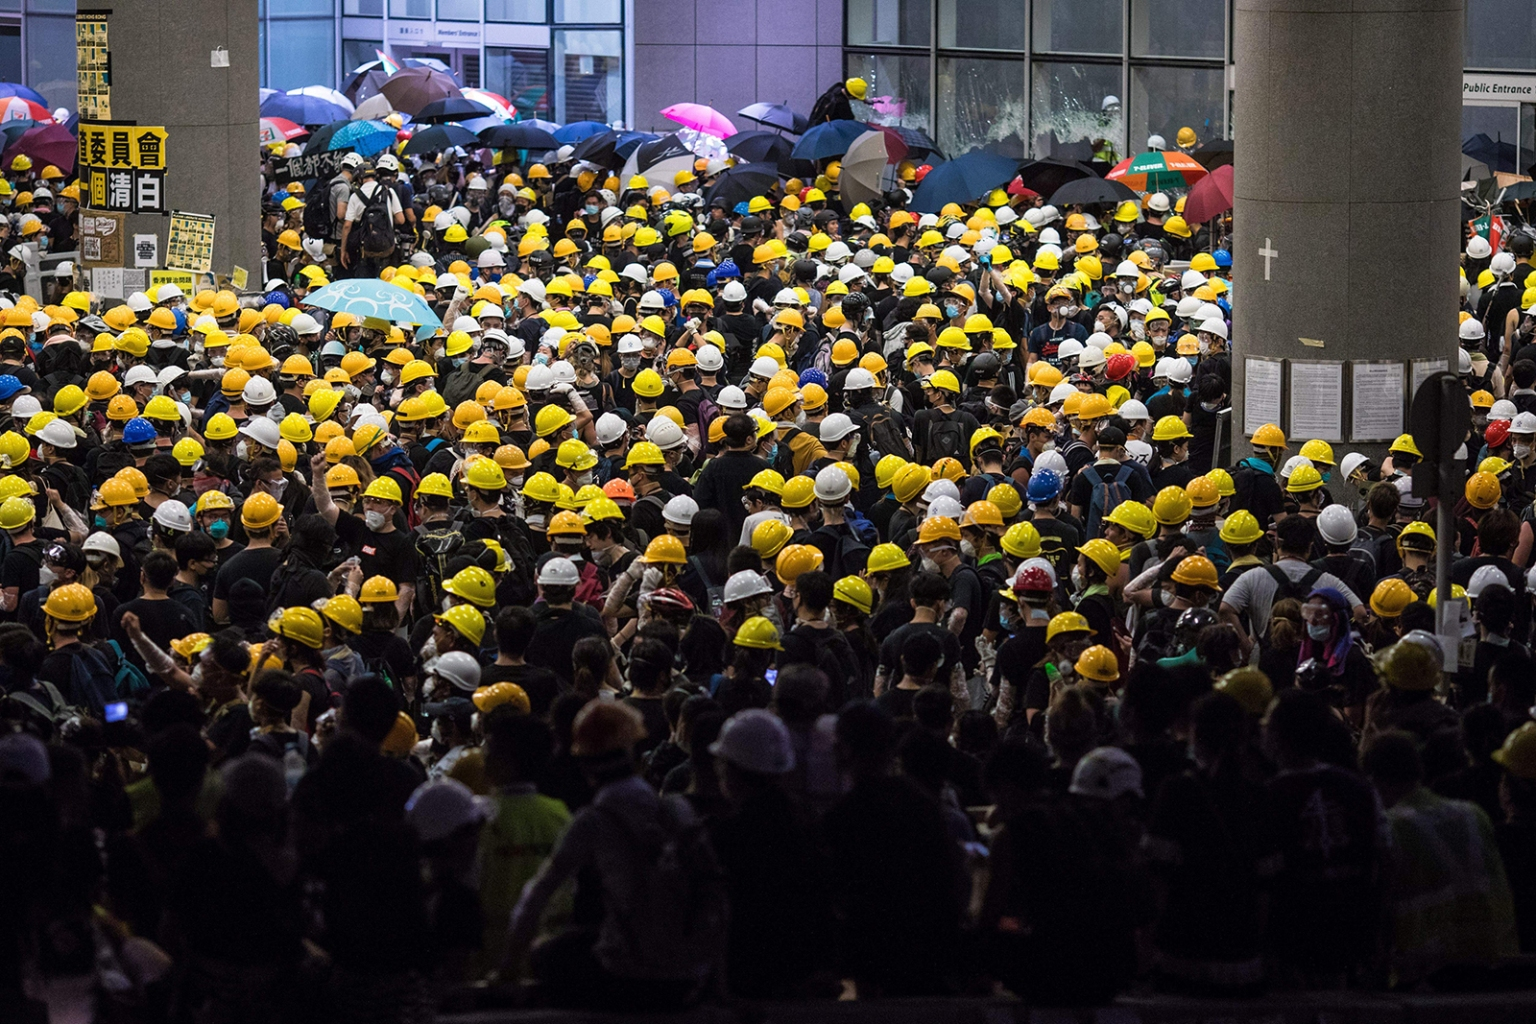 A crowd of protesters gather outside the government headquarters in Hong Kong on July 1, before storming the   parliament, ransacking the building, and daubing its walls with graffiti. DALE DE LA REY/AFP/Getty Images